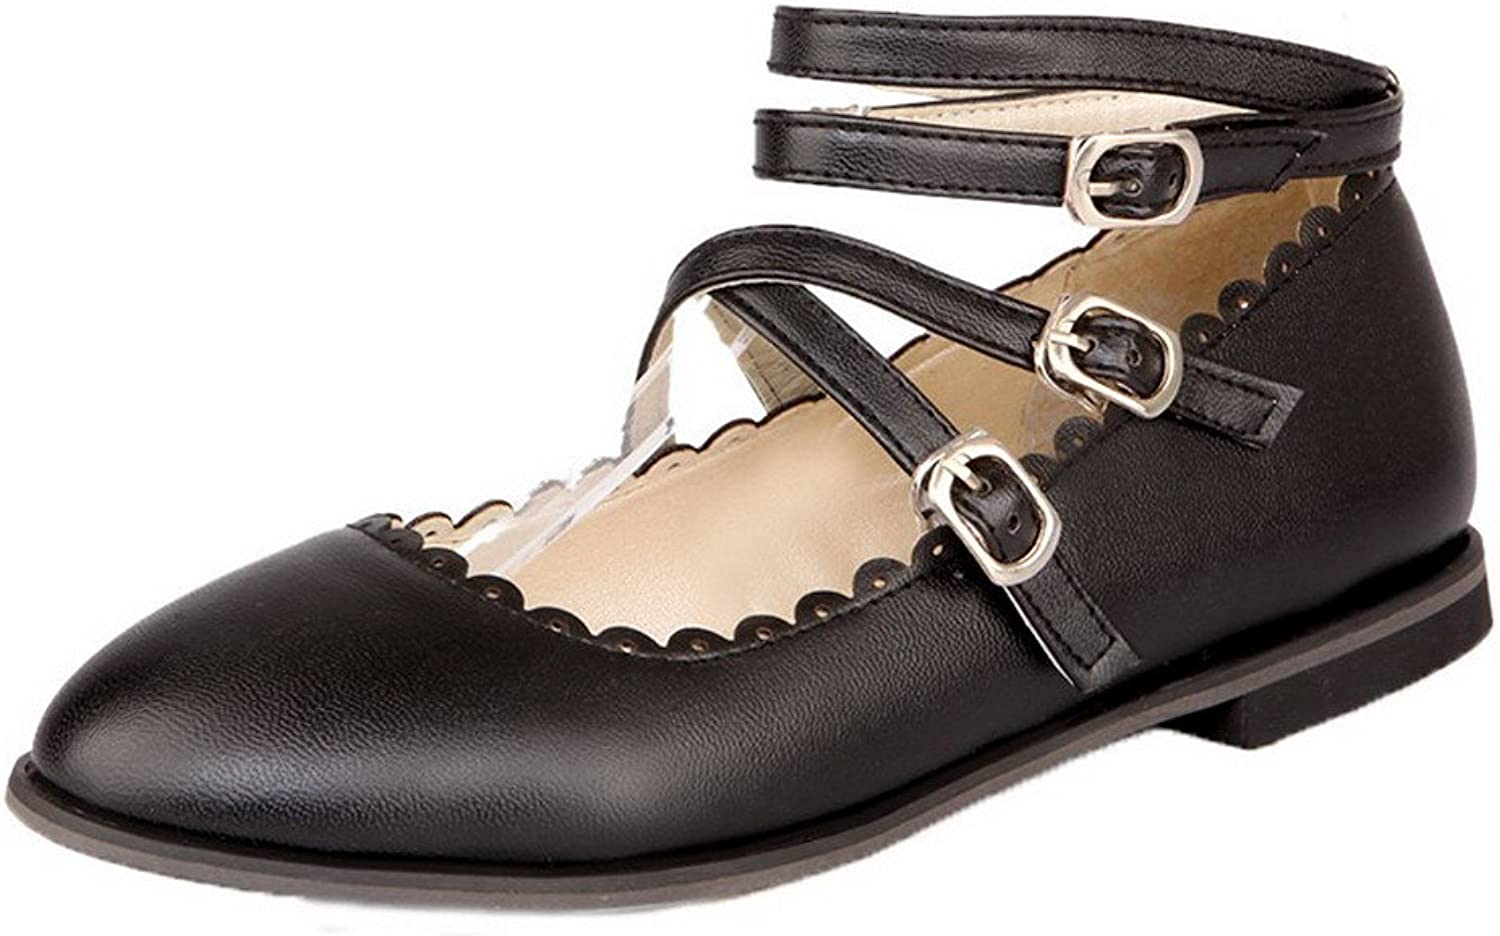 WeenFashion Women's Solid PU Low-Heels Round-Toe Buckle Pumps-shoes